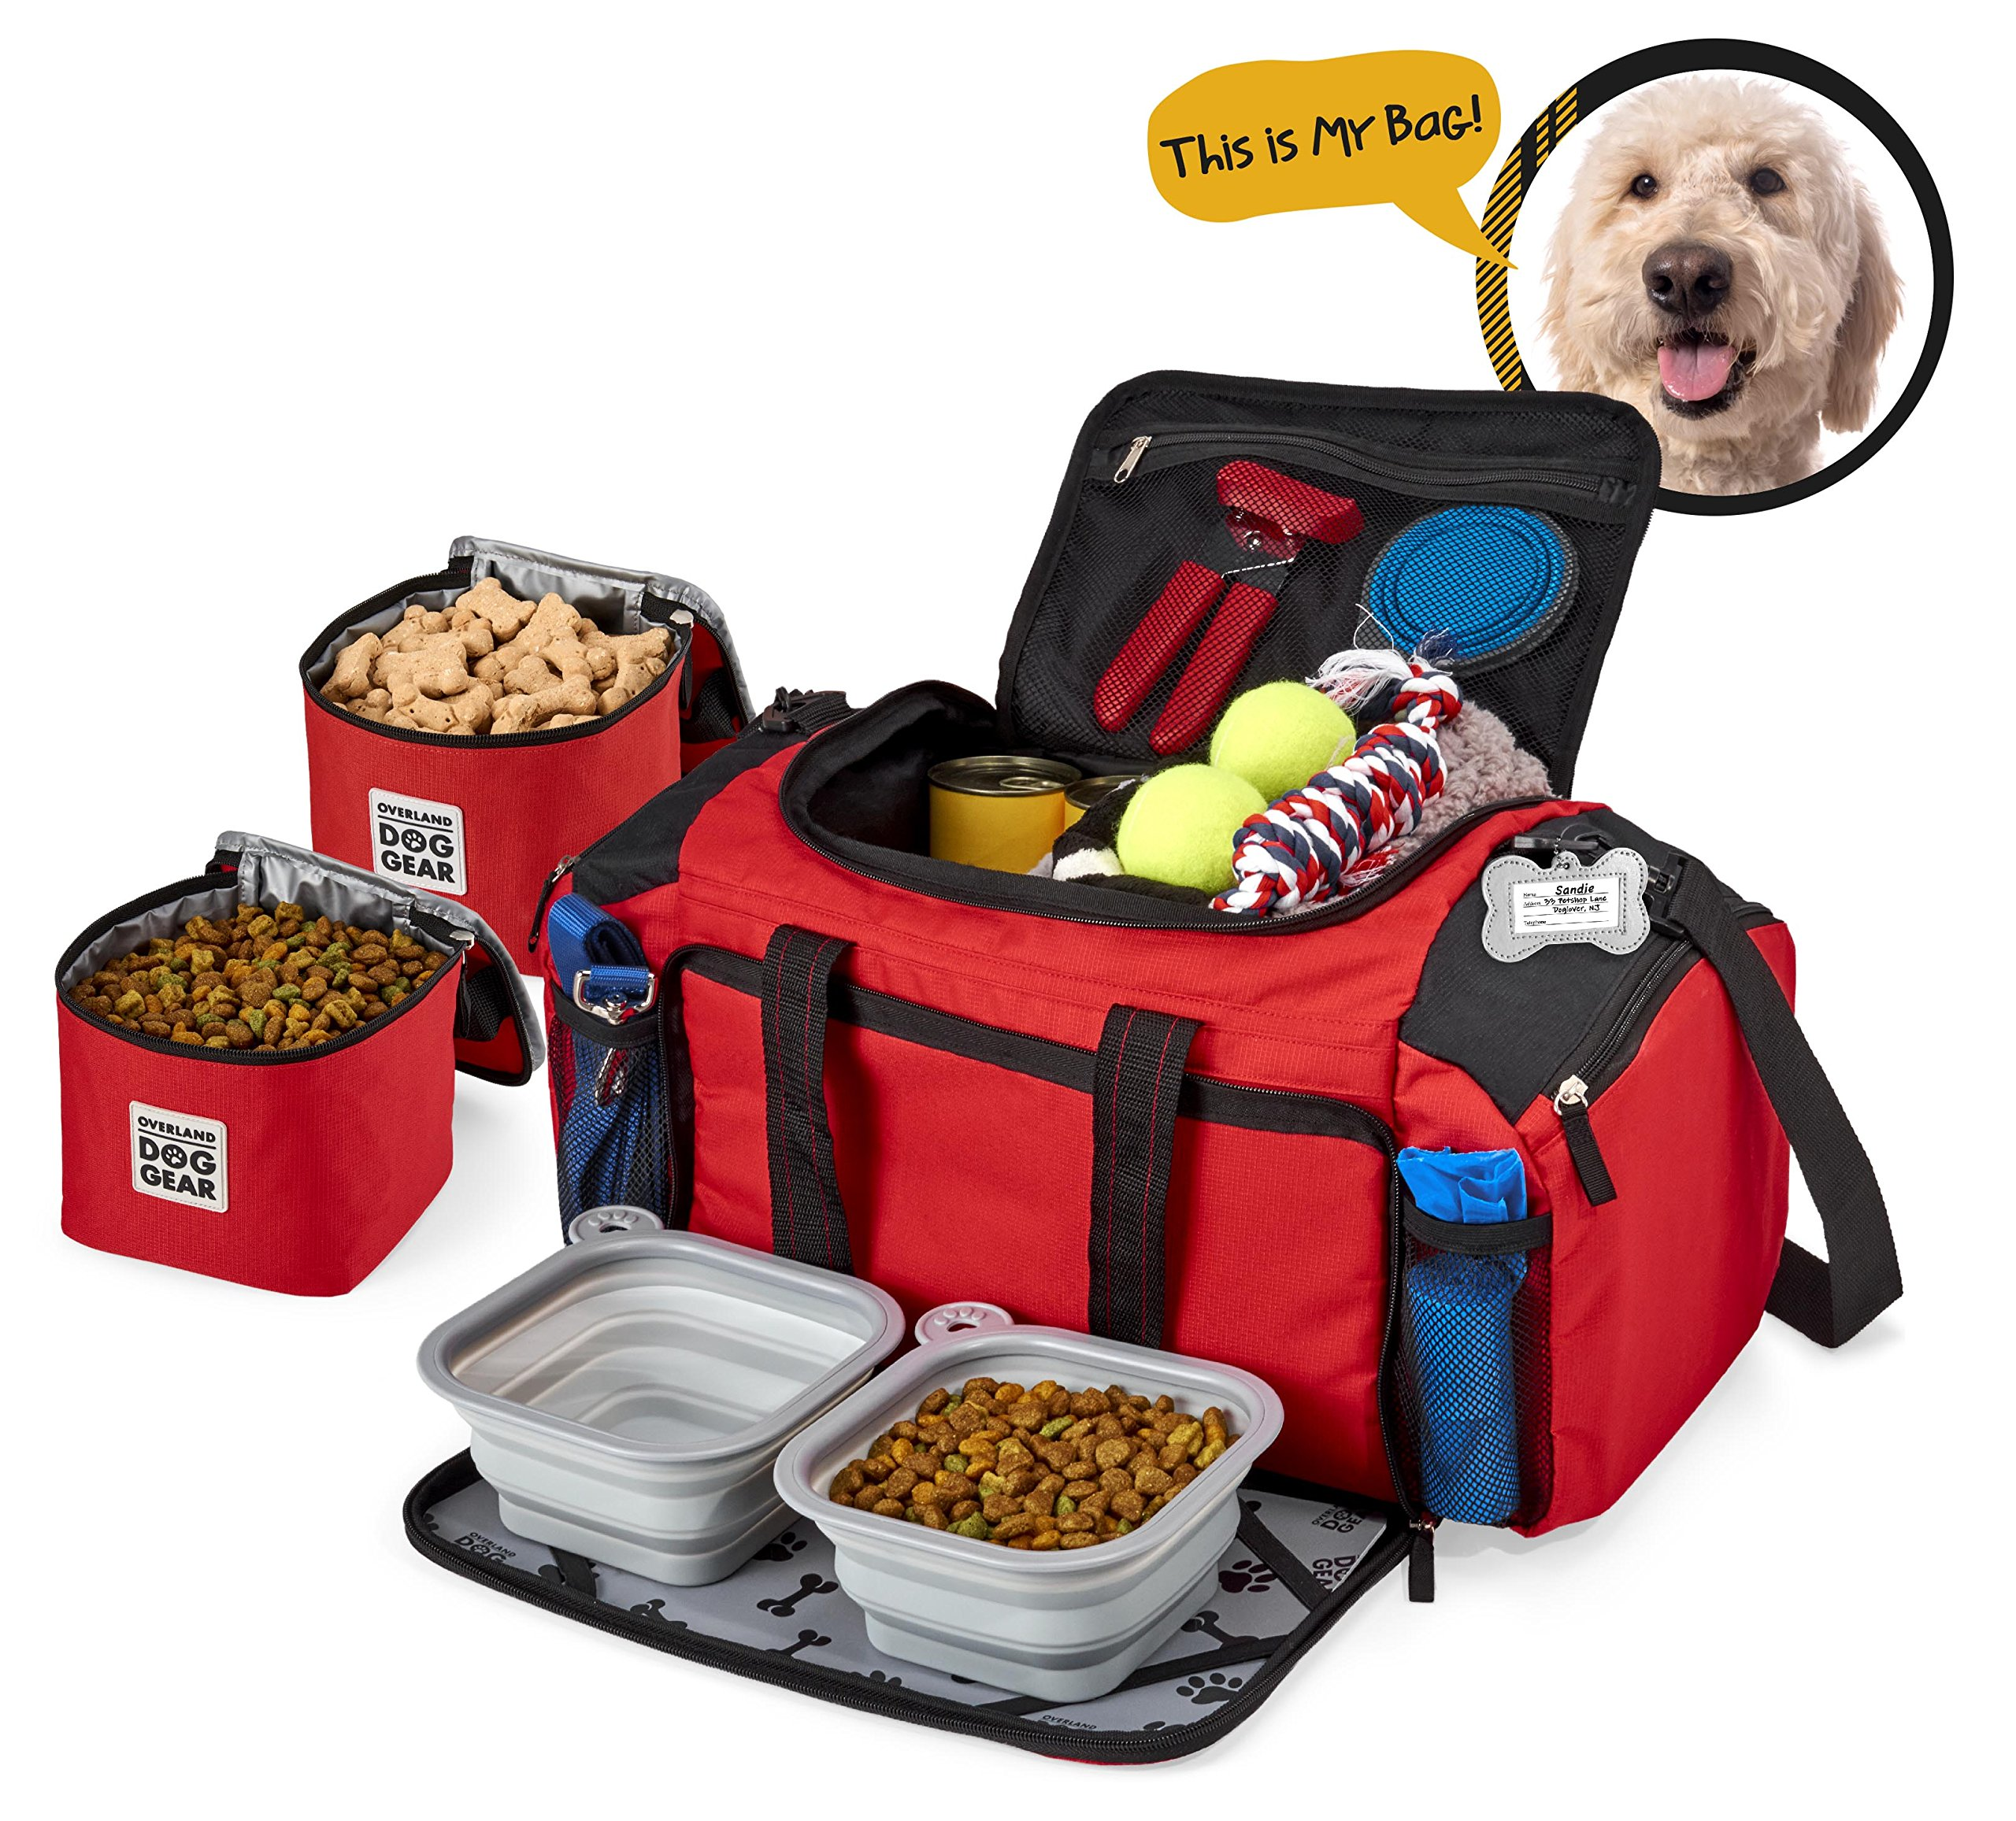 Dog Travel Bag - Ultimate Week Away Duffel For Med And Large Dogs - Includes Bag, 2 Lined Food Carriers, Placemat, and 2 Collapsible Bowls